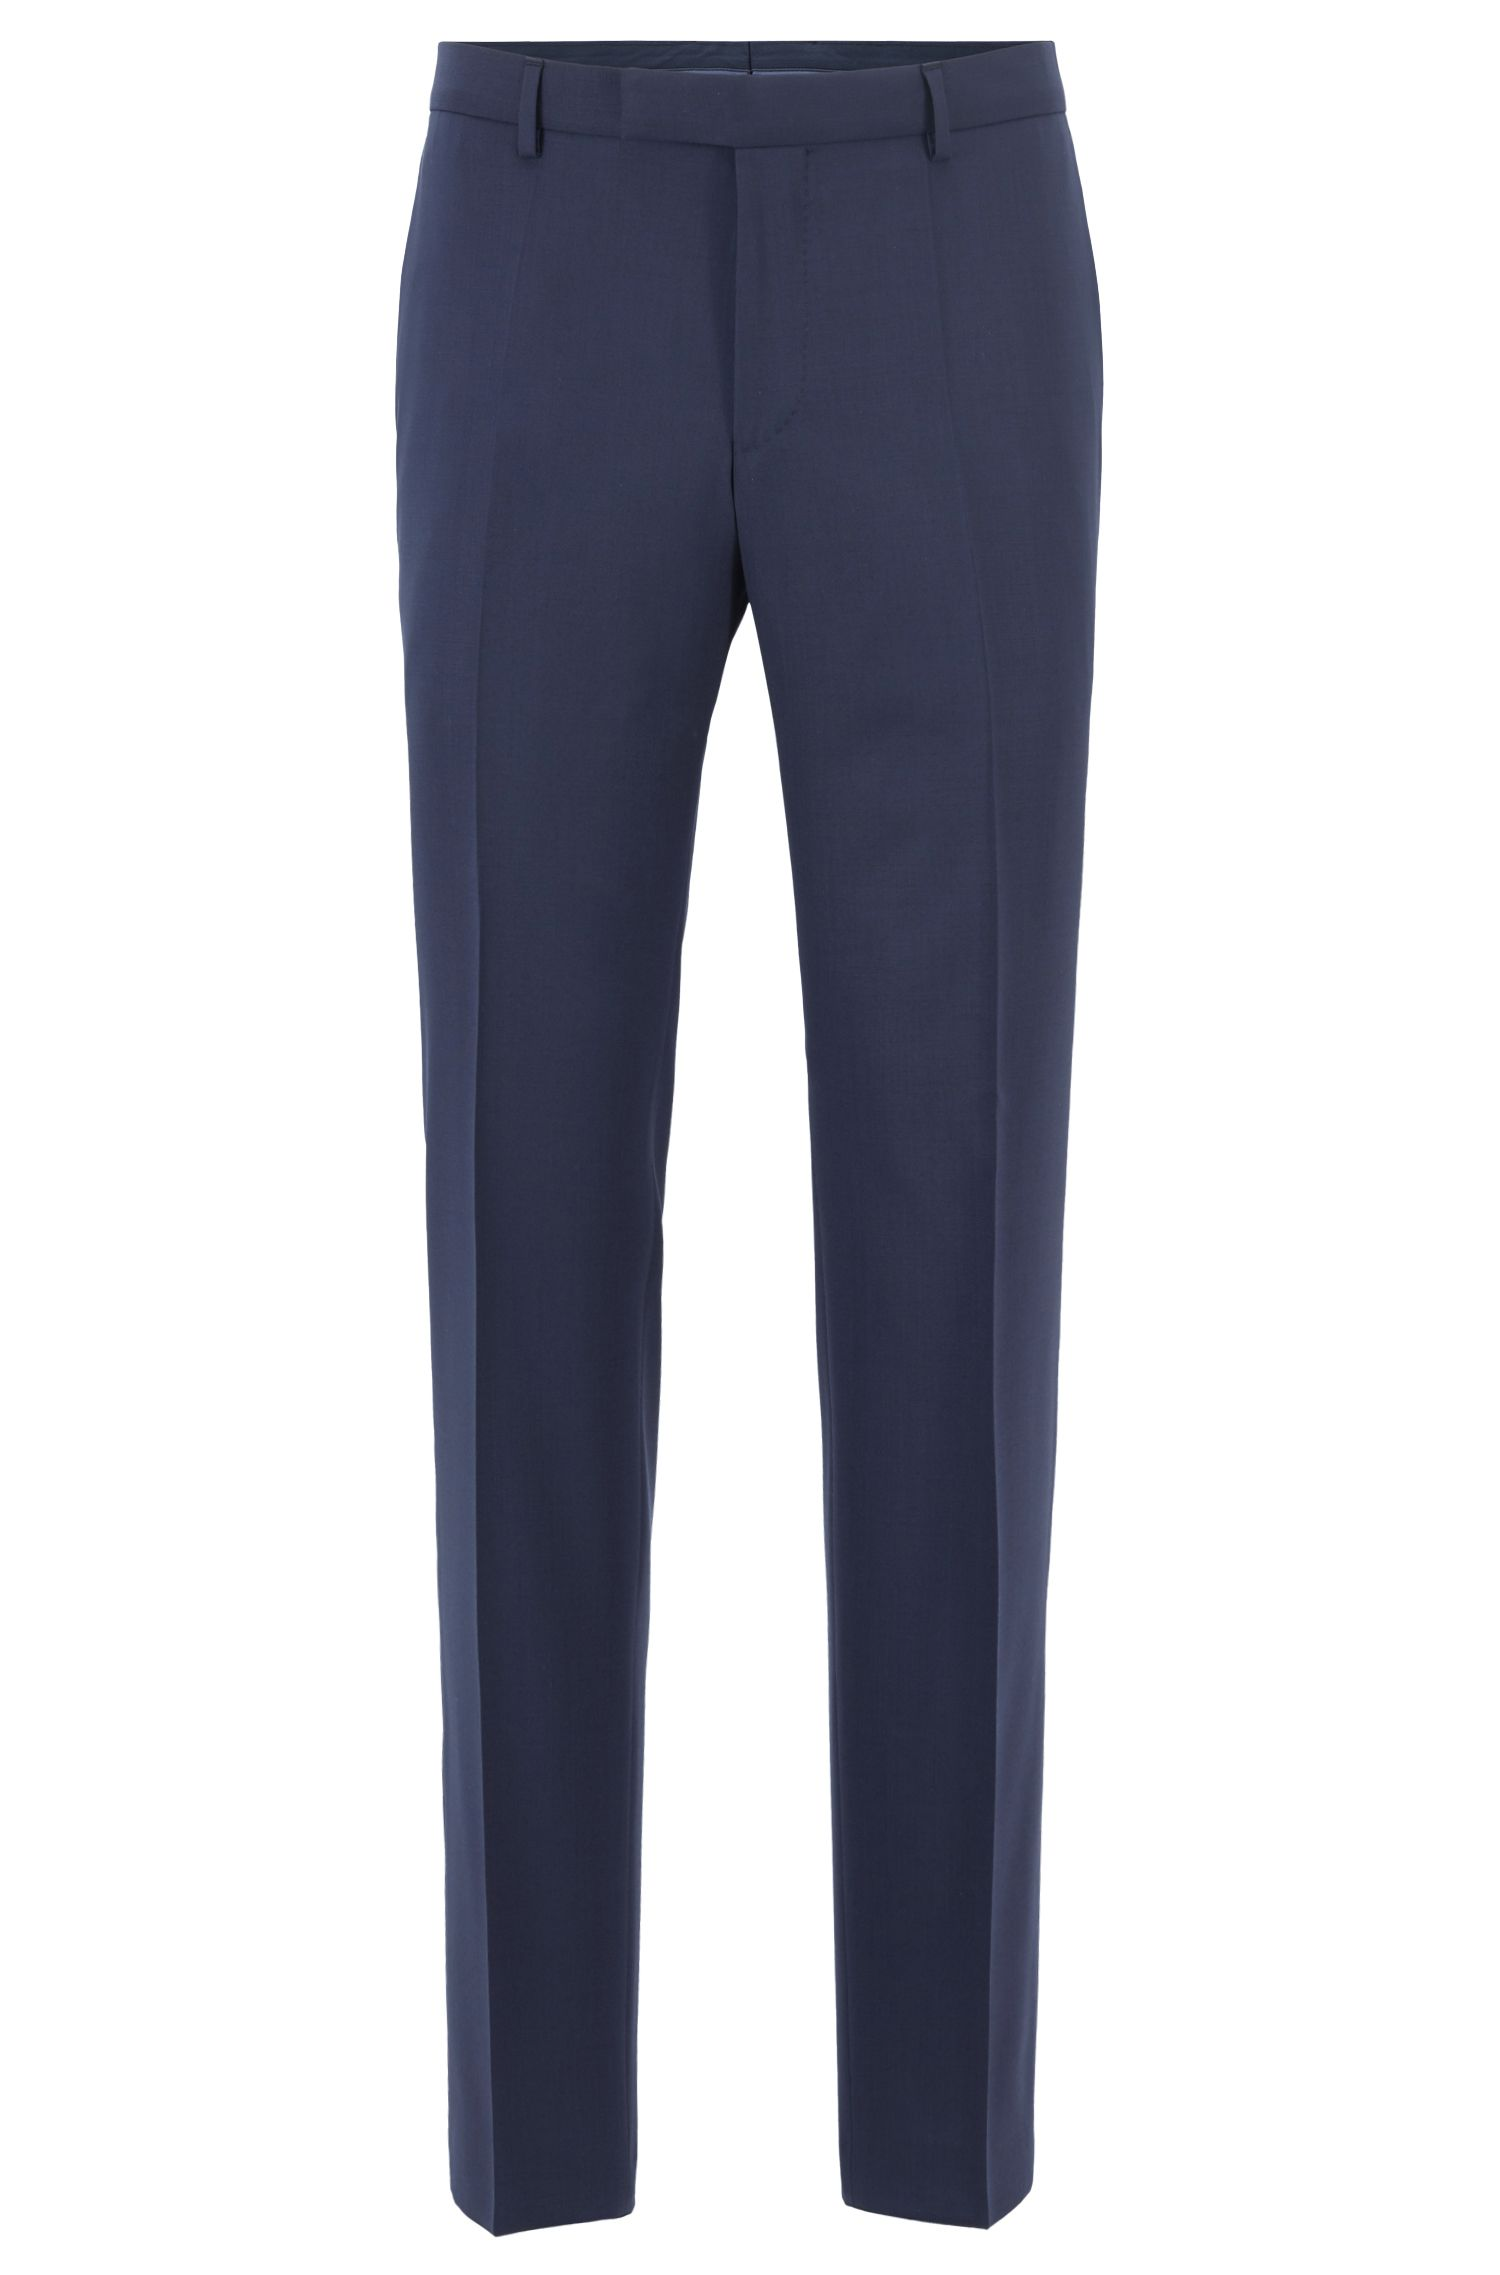 Costume Slim Fit en laine vierge à doublure stretch, Bleu